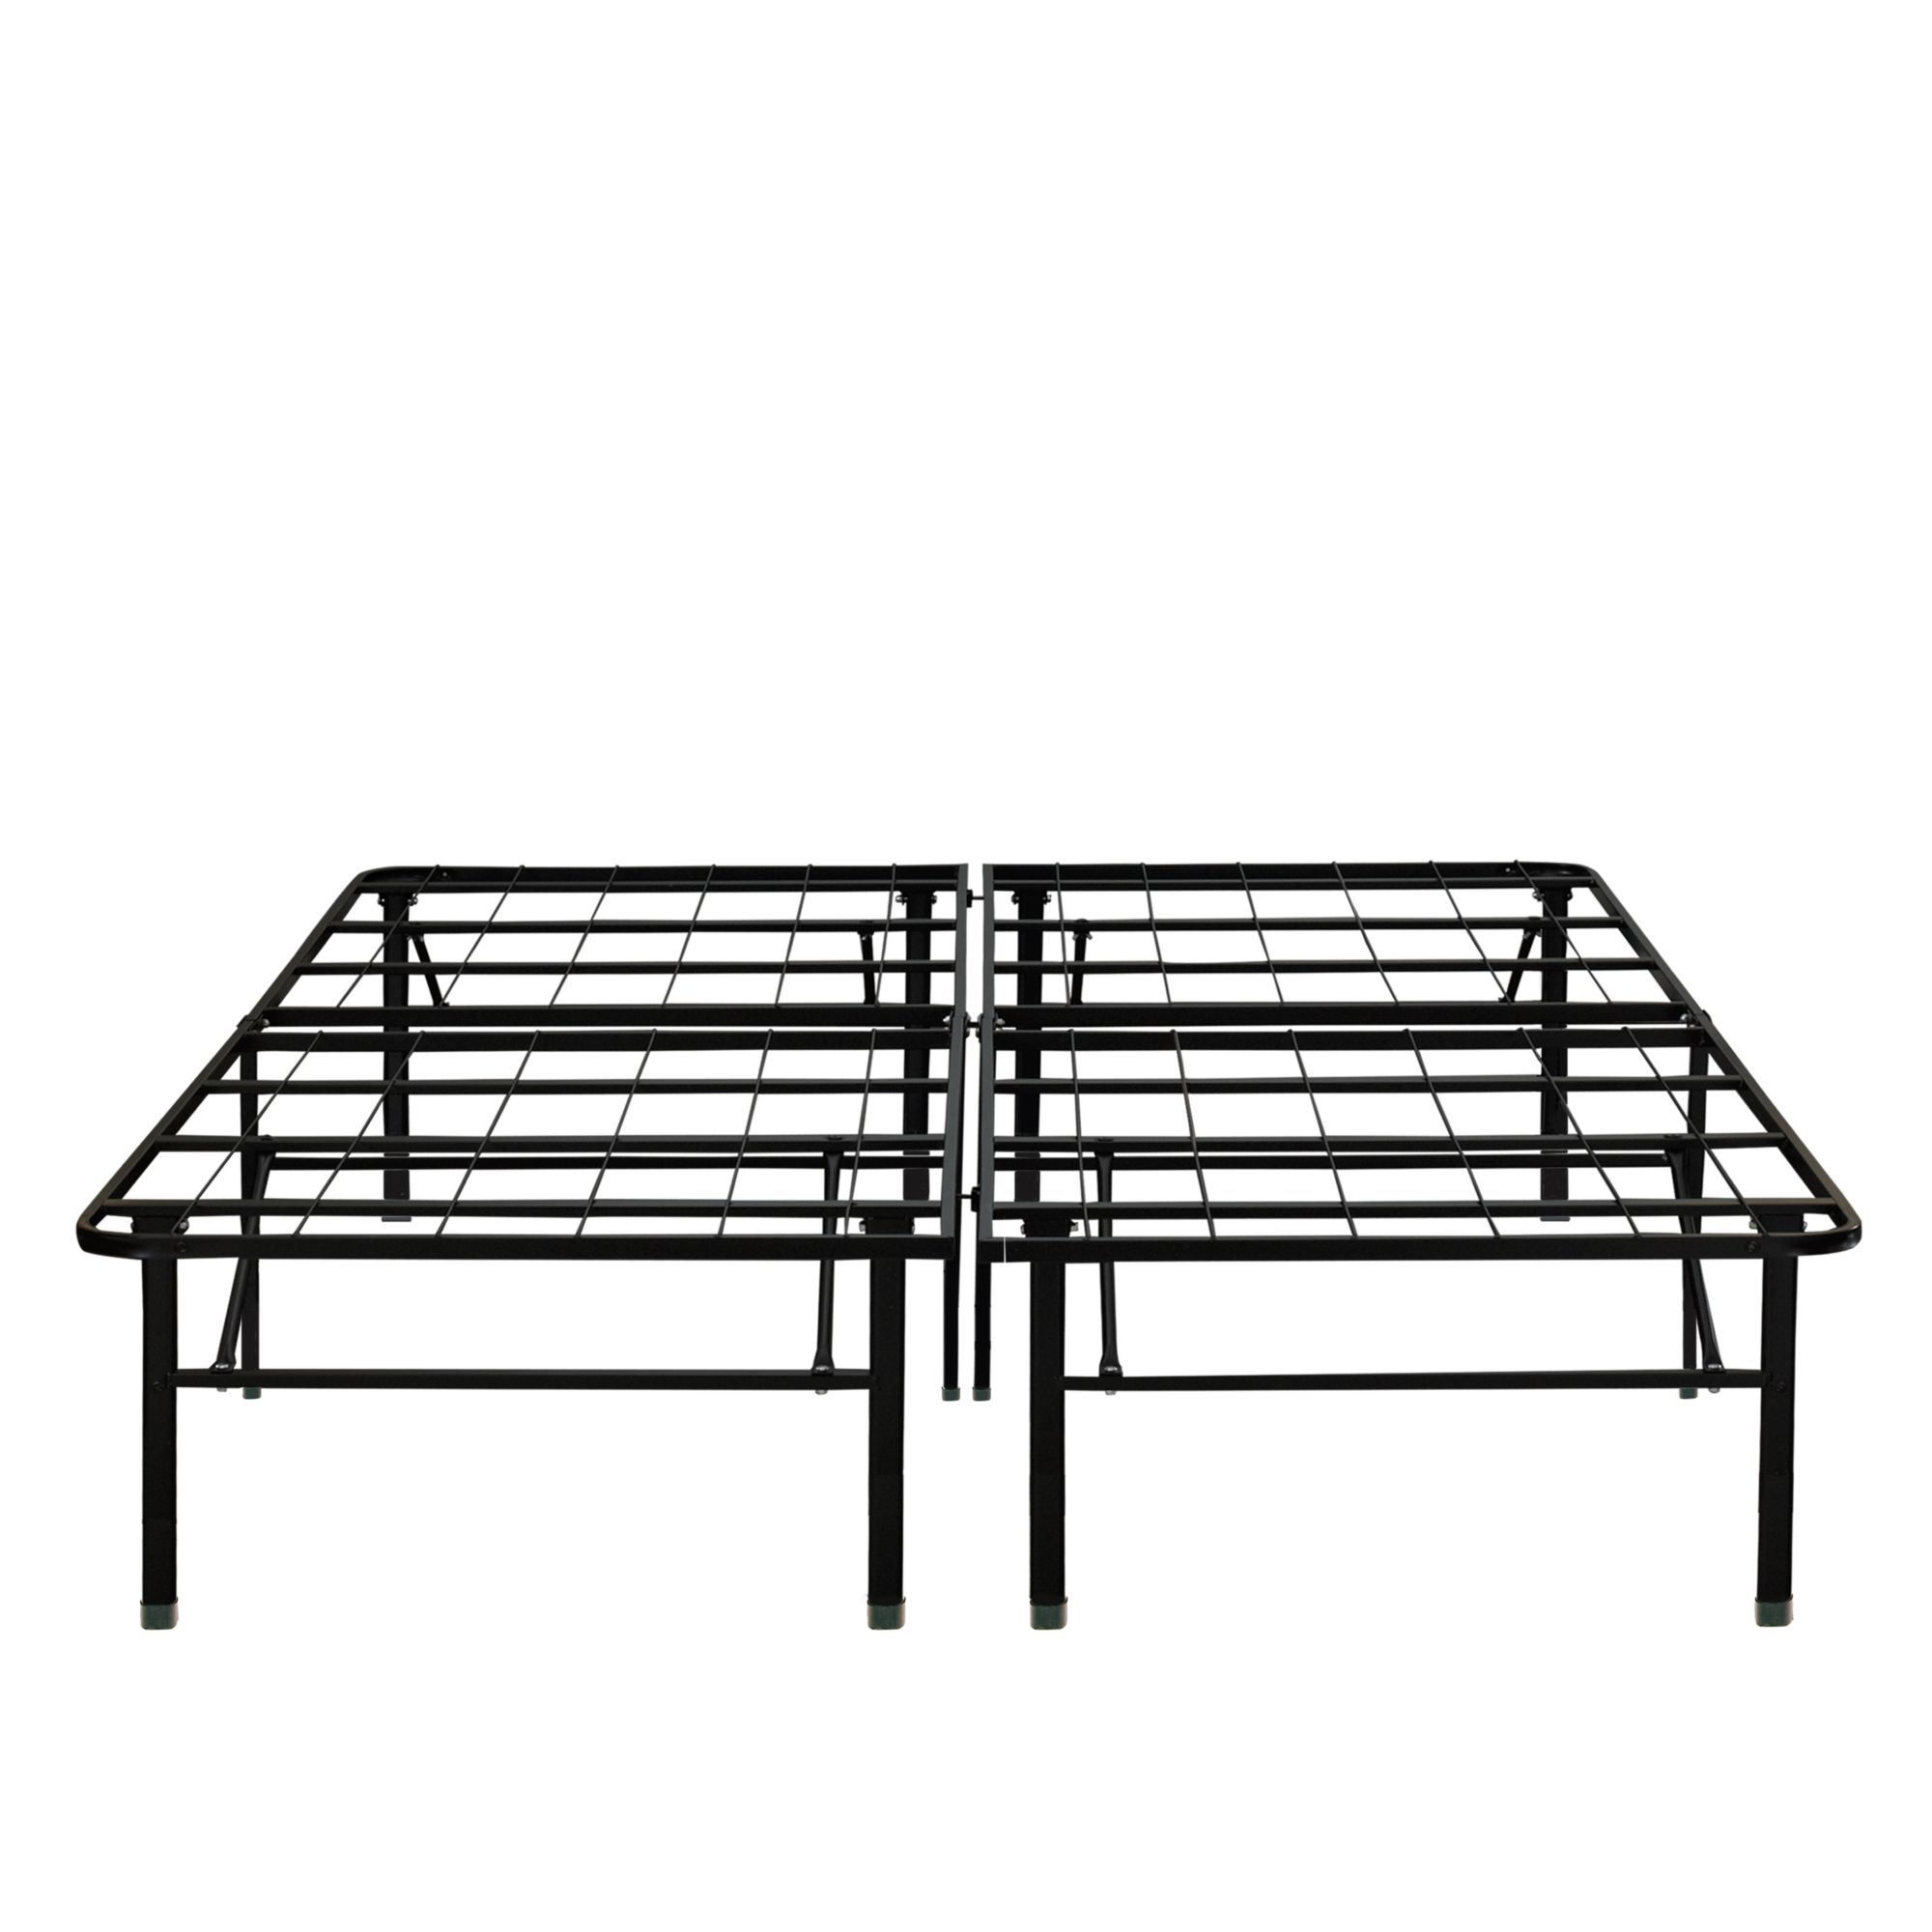 Image of: 18 Contour Rest Dream Support Queen Size Bed Frame Bjs Wholesale Club